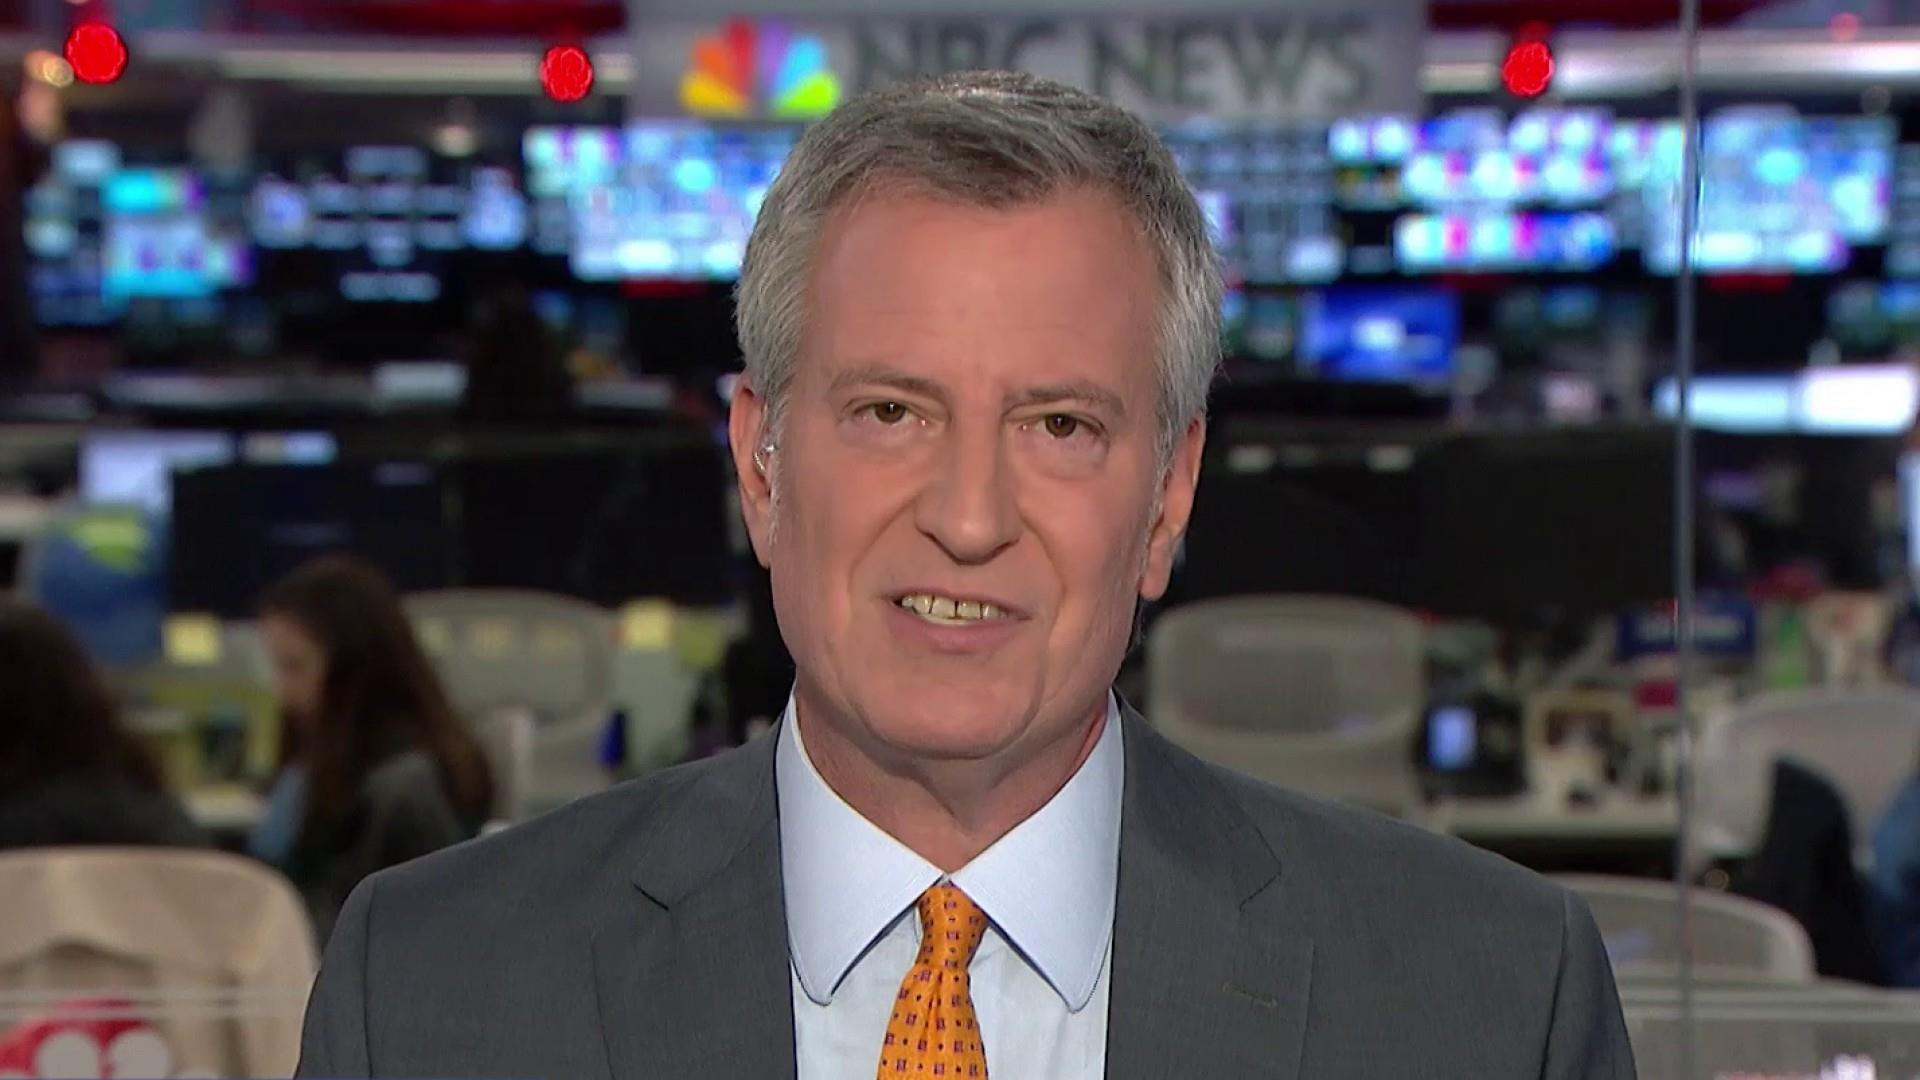 NYC Mayor De Blasio talks Biden's segregationist comments